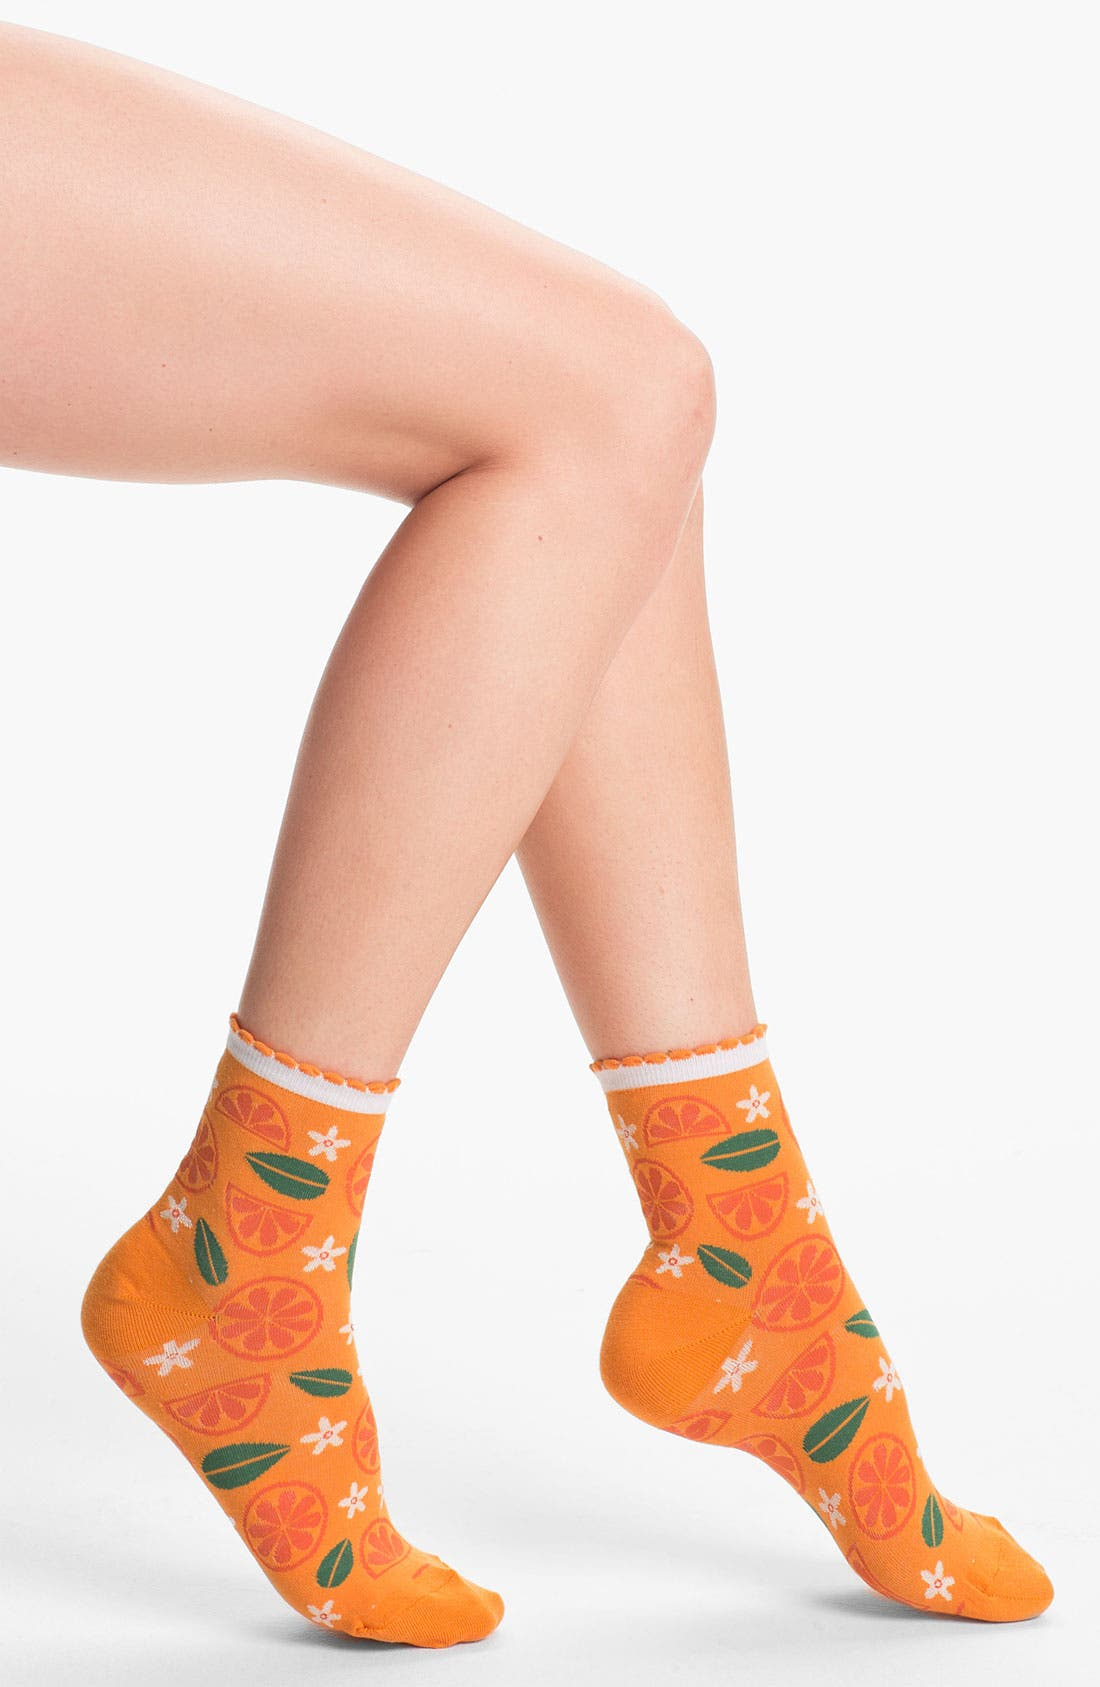 Alternate Image 1 Selected - Hot Sox 'Citrus' Scallop Cuff Socks